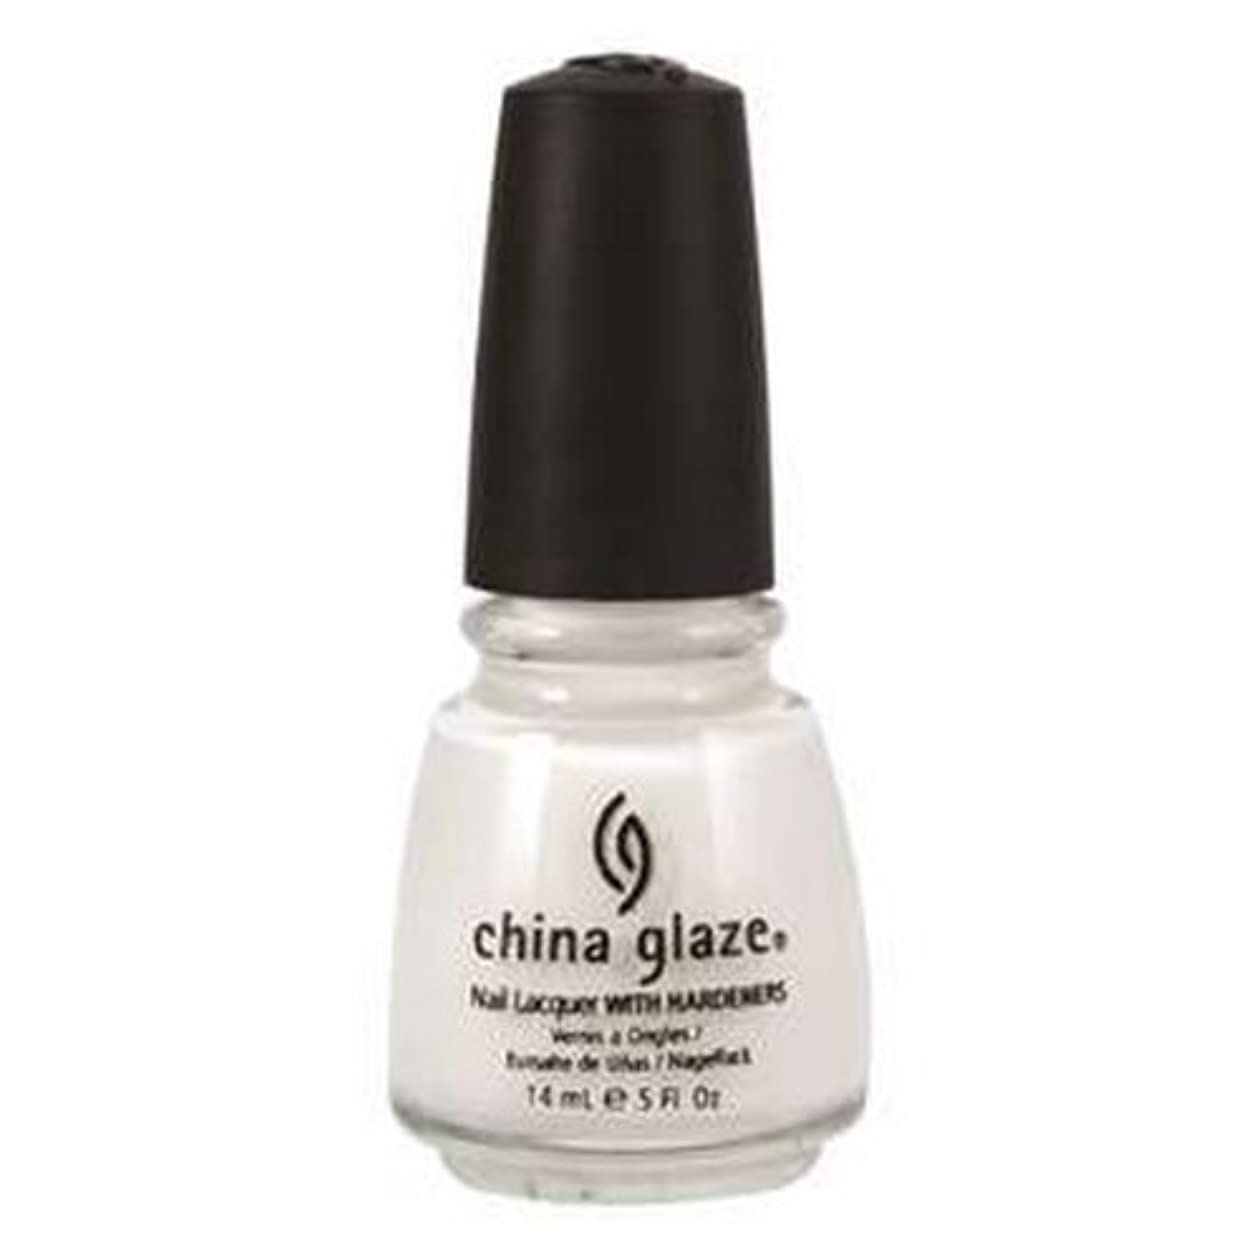 準備した前に閉じ込める(3 Pack) CHINA GLAZE Nail Lacquer with Nail Hardner 2 - Snow (並行輸入品)